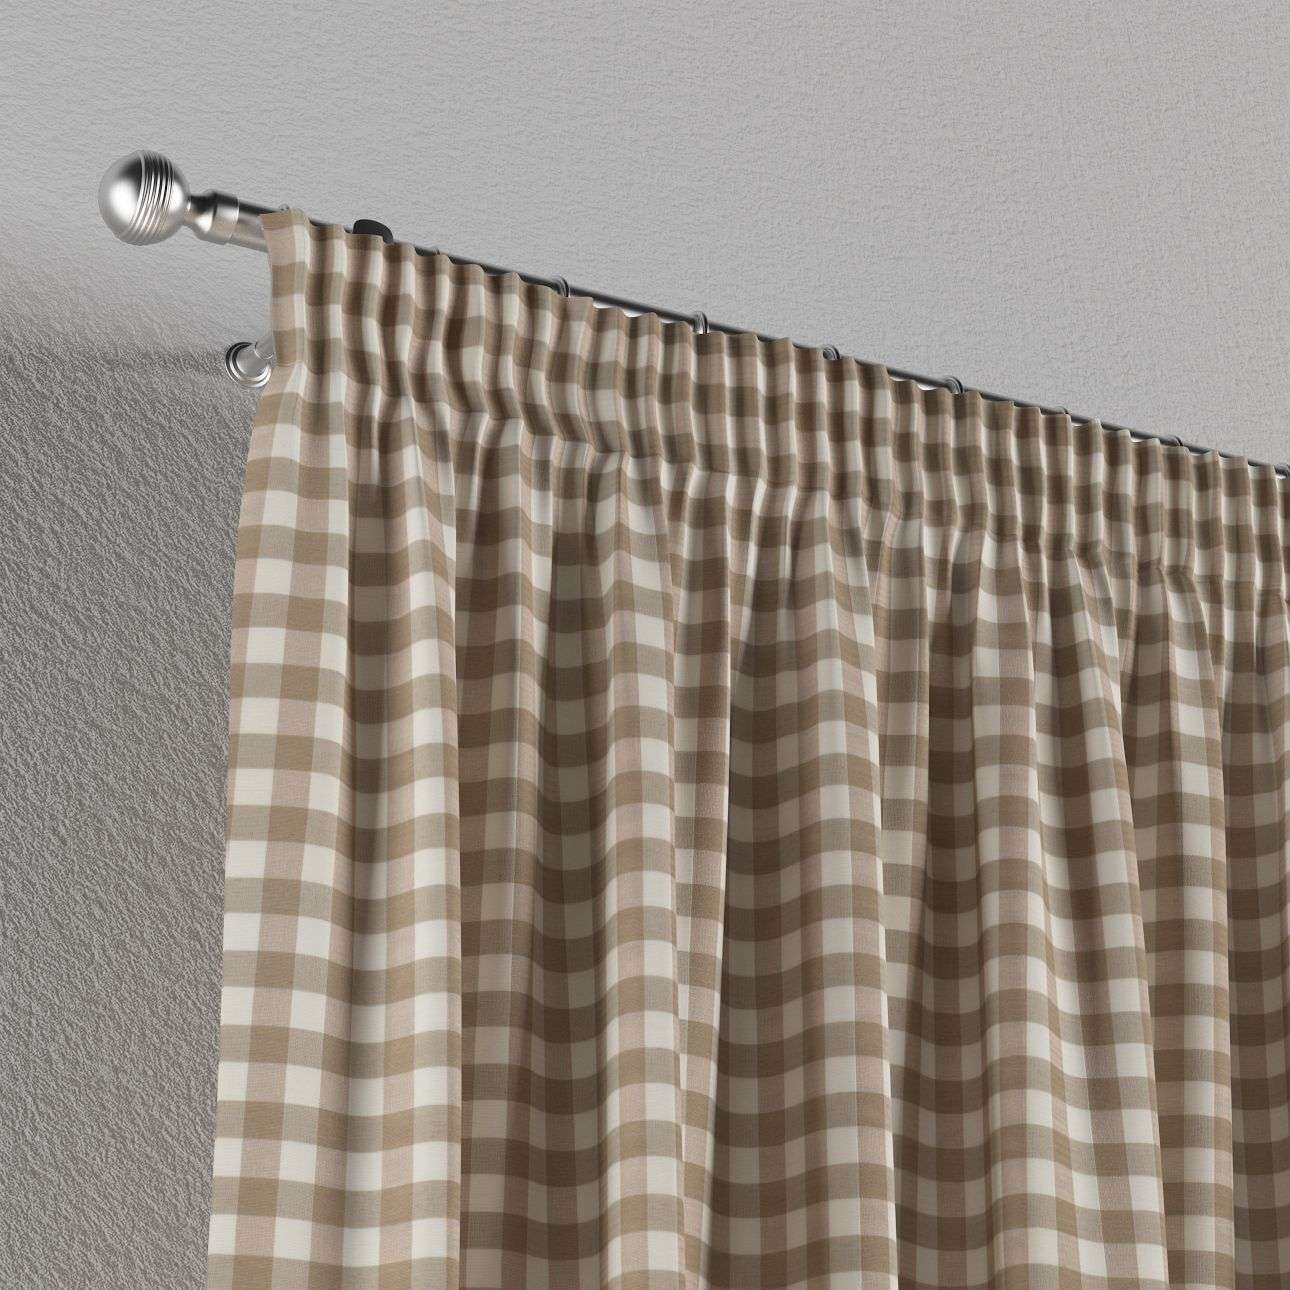 Pencil pleat curtains 130 x 260 cm (51 x 102 inch) in collection Quadro, fabric: 136-06